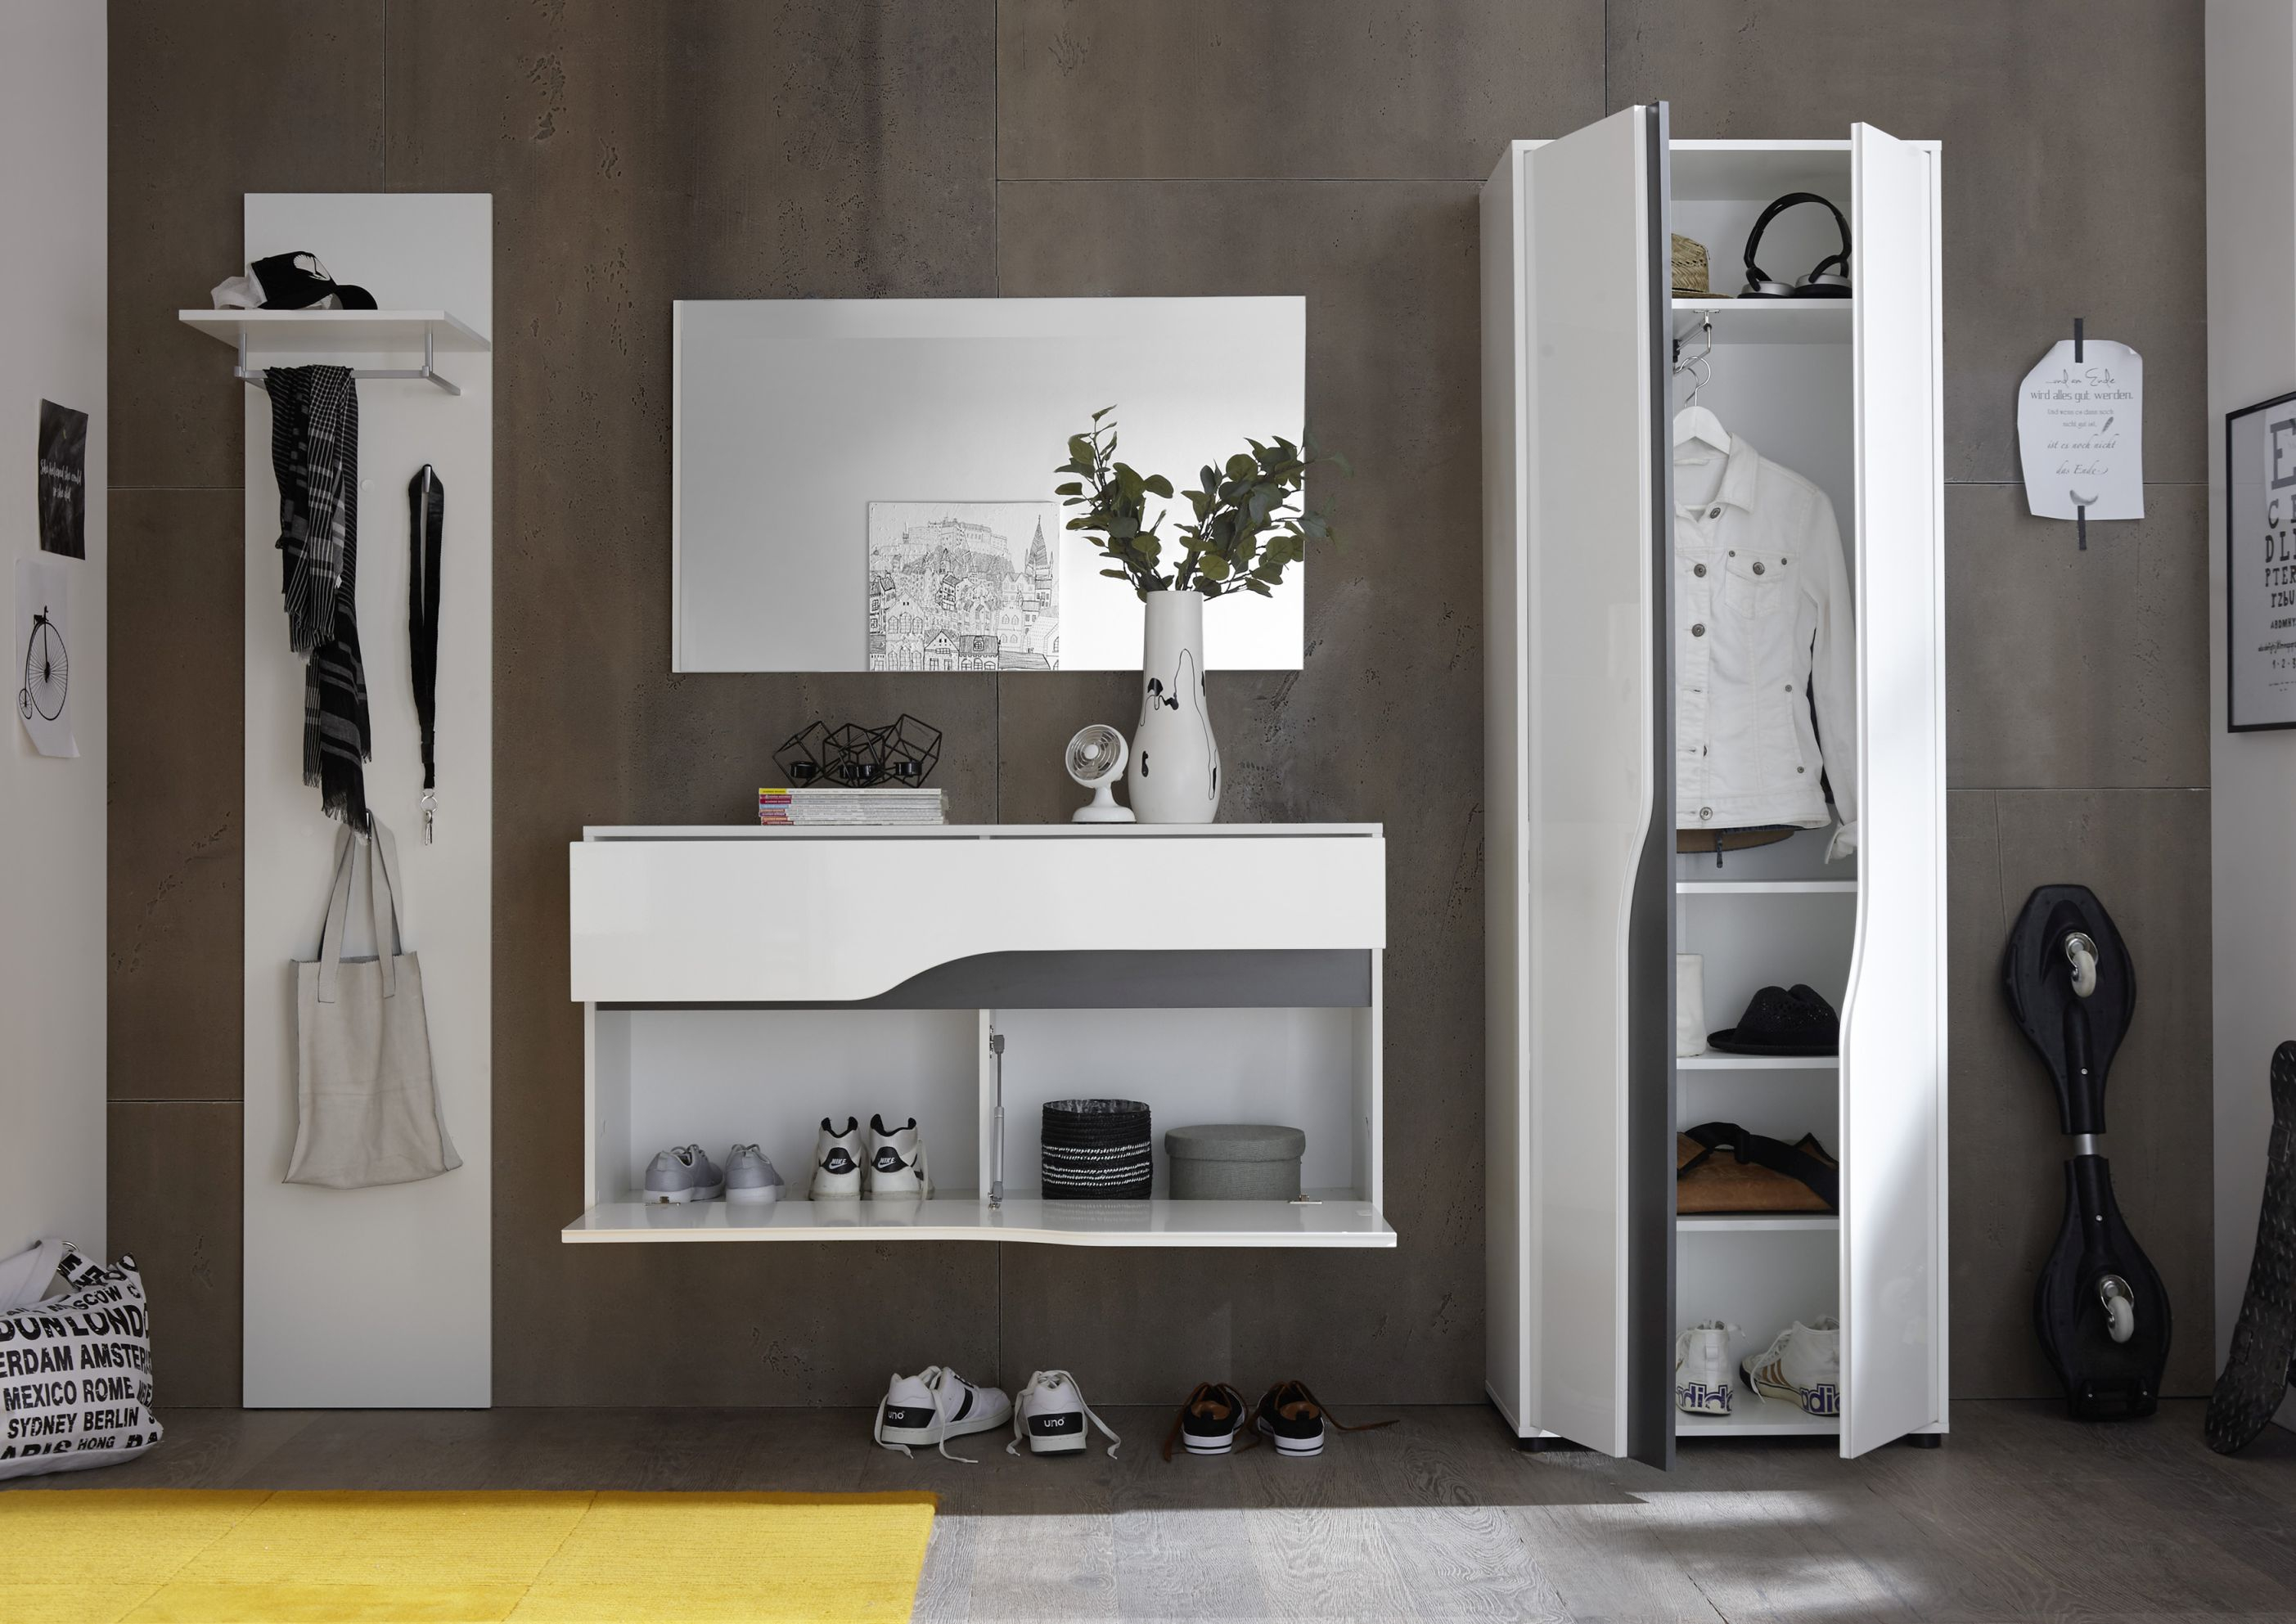 garderobe 4 tlg paneel schuhkommode spiegel hochschrank wei hochglanz 265cm ebay. Black Bedroom Furniture Sets. Home Design Ideas